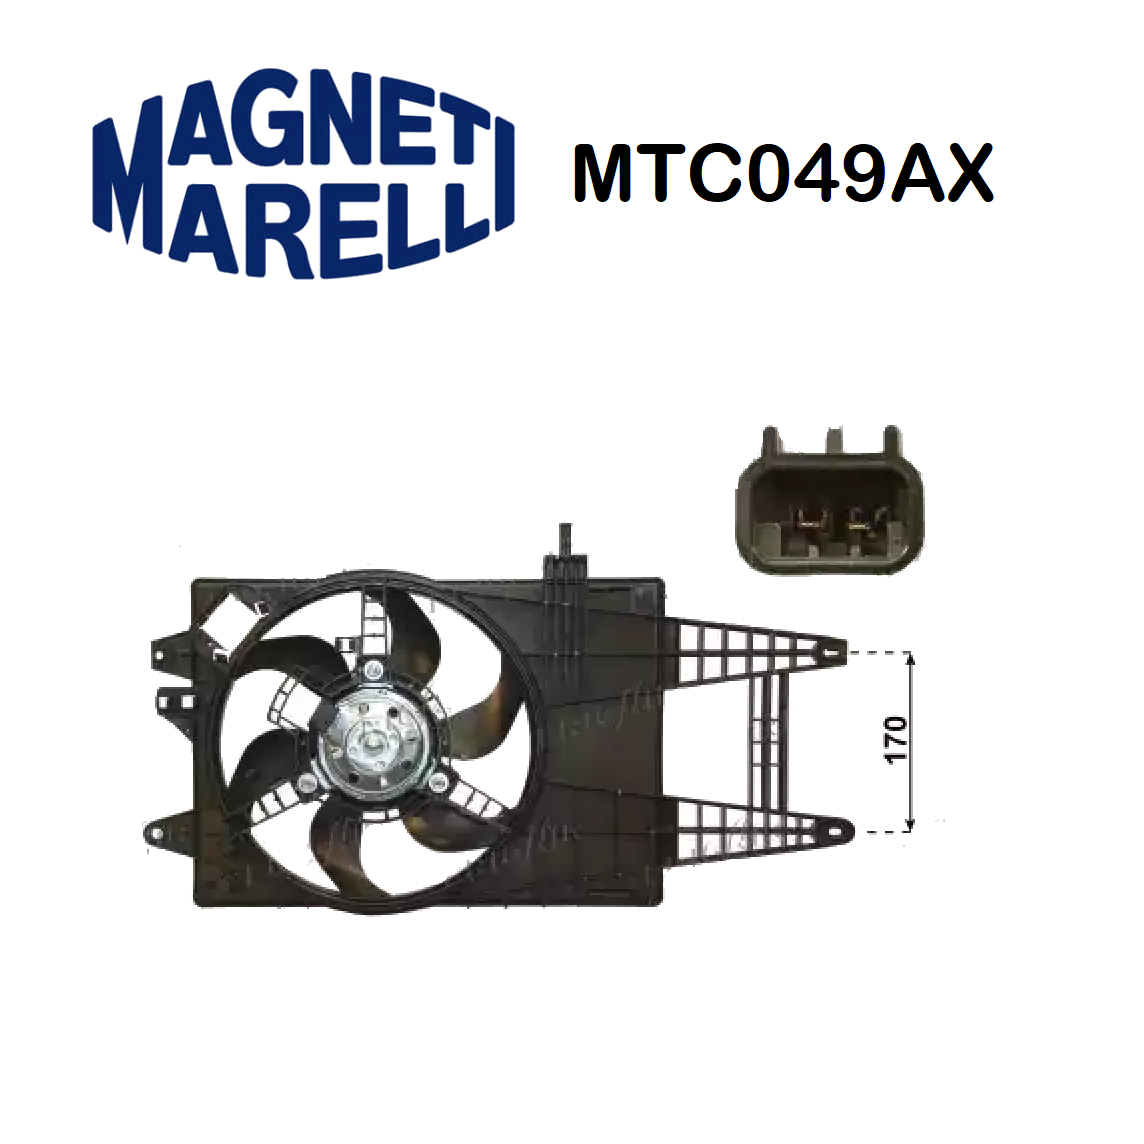 FIAT PUNTO MAGNETI MARELLI ENGINE COOLING FAN FOR 46745045